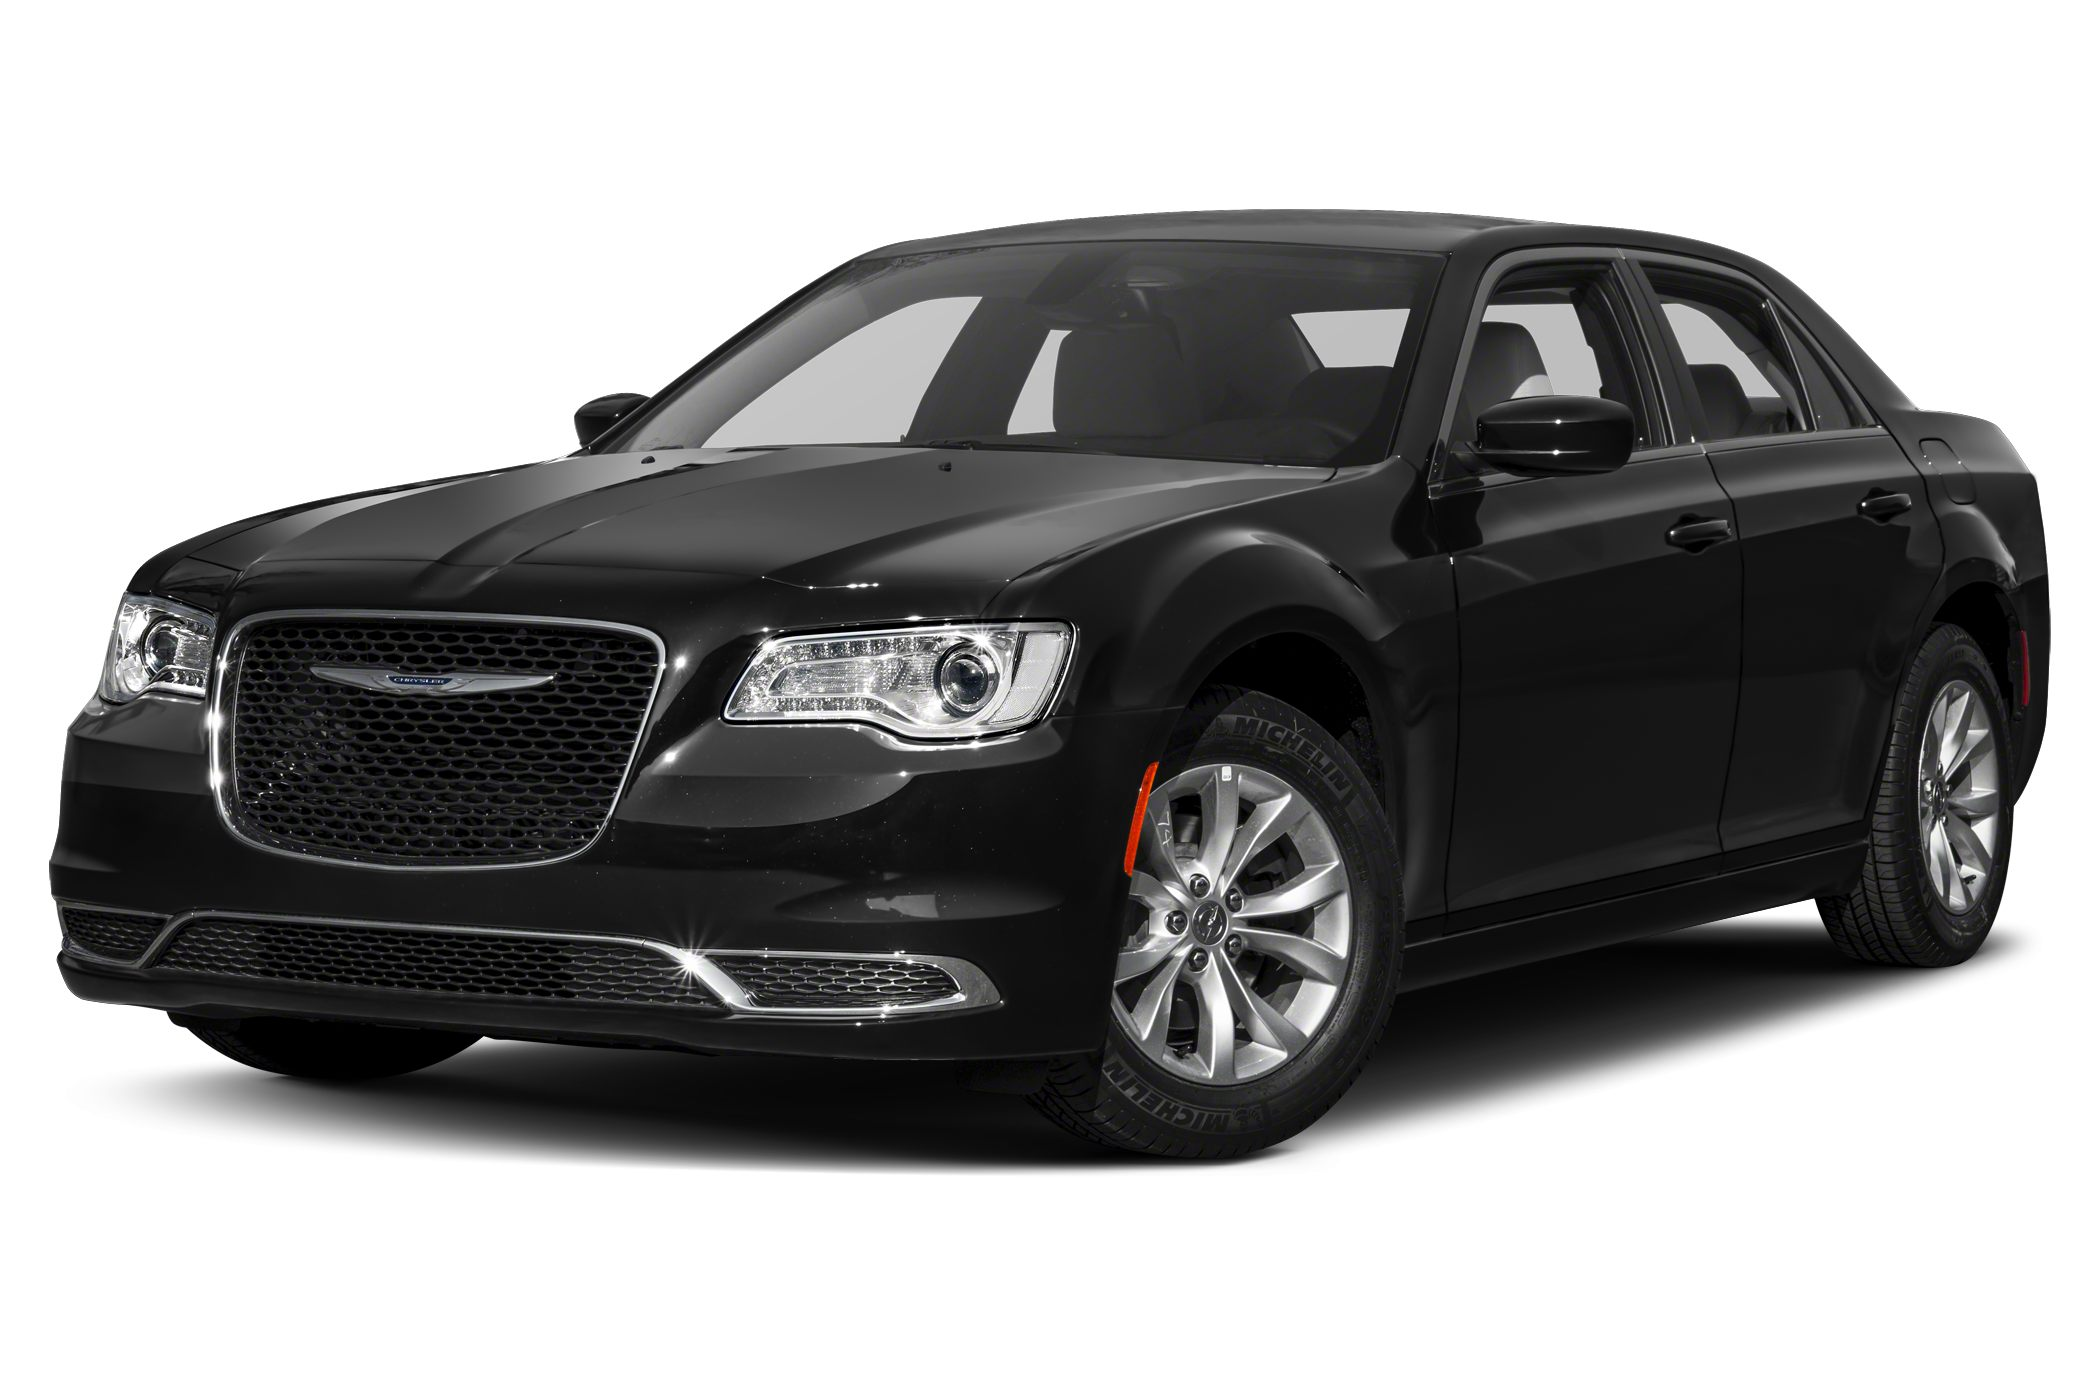 2015 Chrysler 300 S Our Cost reflects all applicable manufacturer rebates andor incentives based